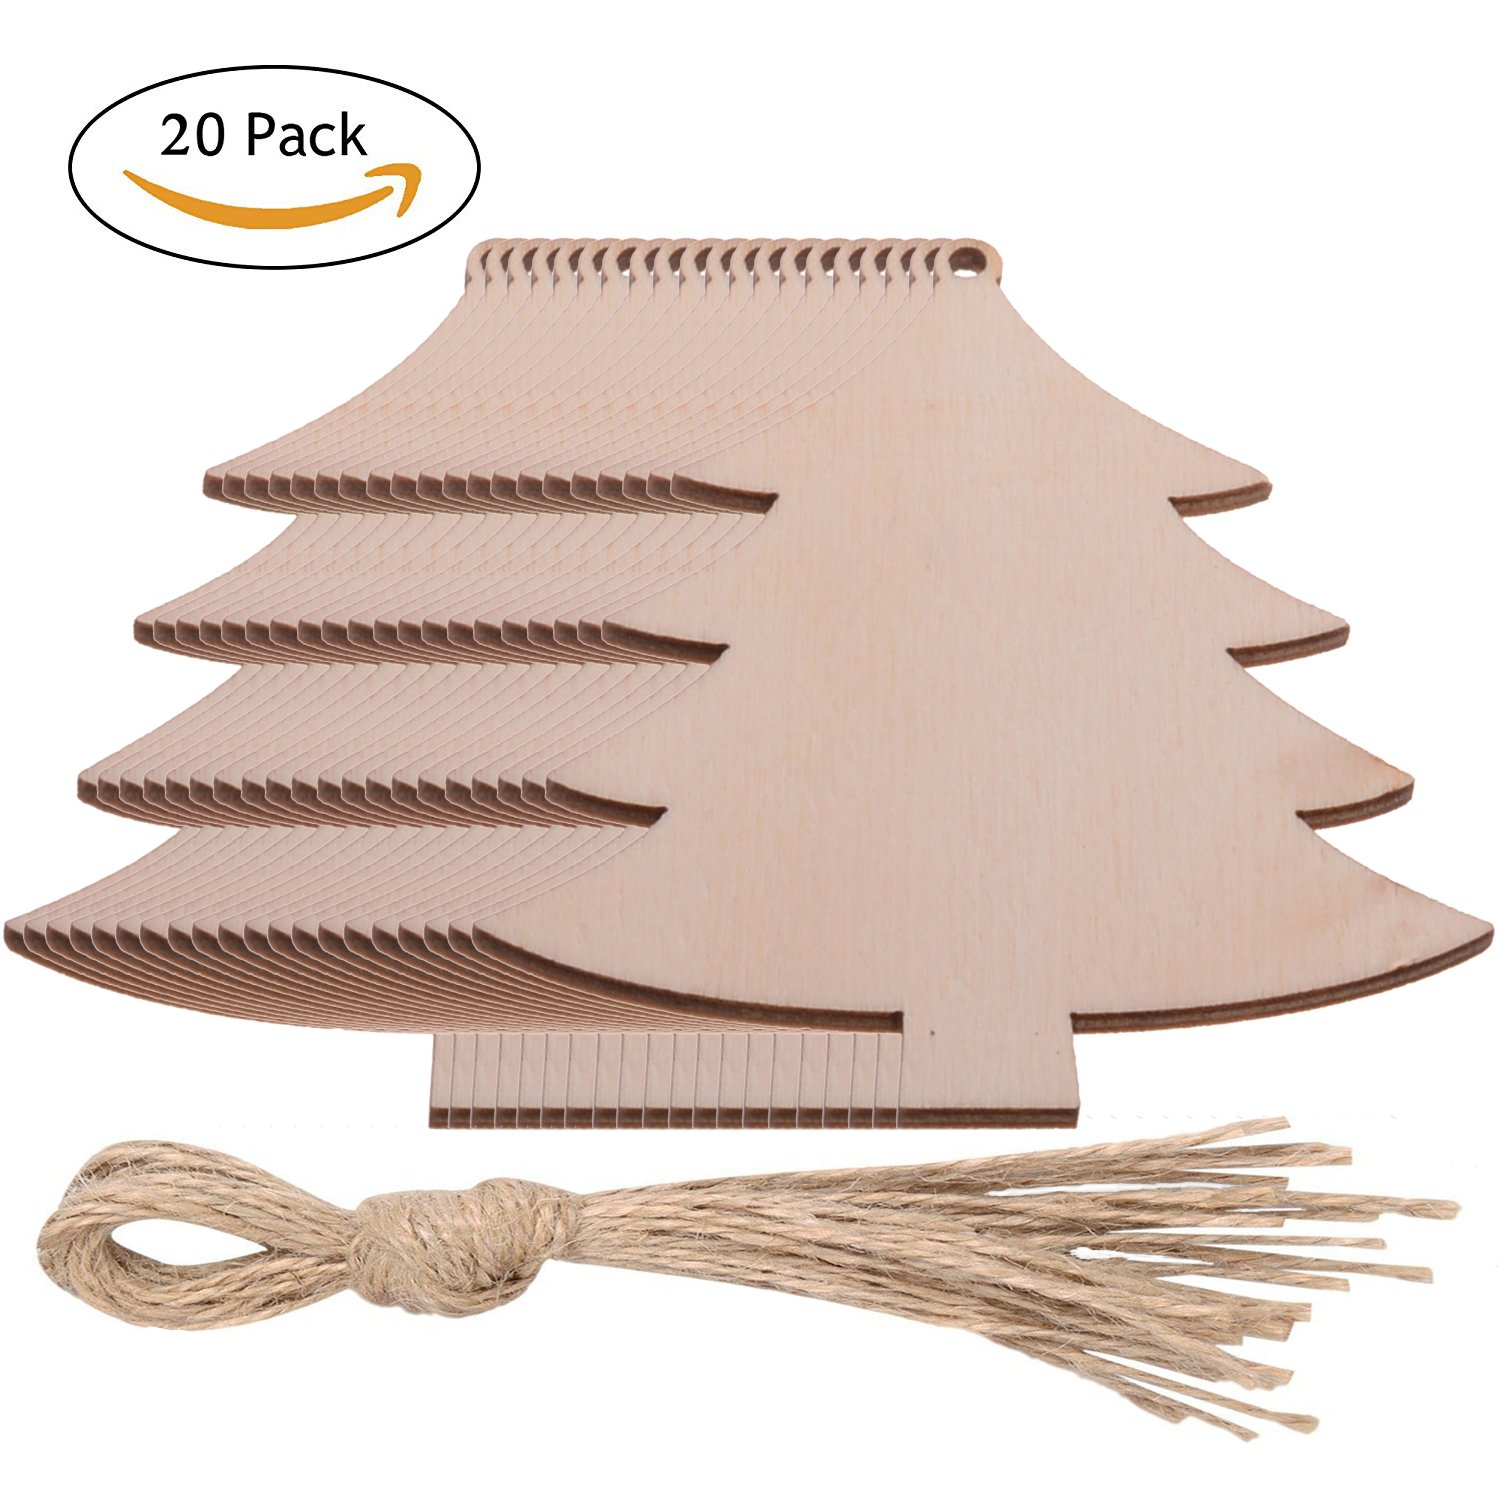 Pack of 20 Wooden Christmas Tree Shaped Embellishments Hanging Ornaments Decoration Unfinished Crafts for Christmas Decoration (20PCs Christmas Tree)